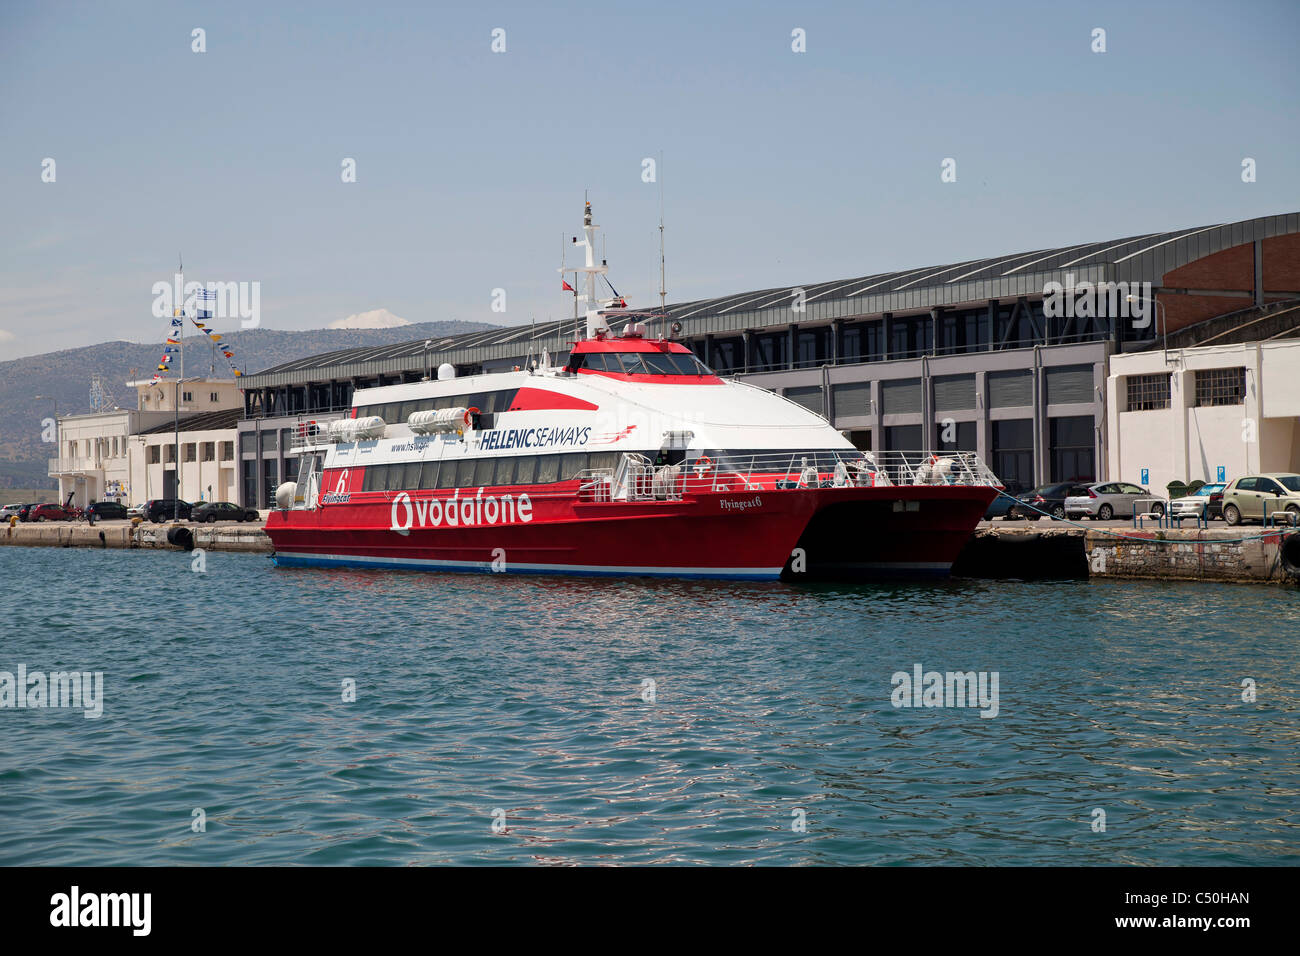 the speed ferry Flying Cat by Hellenic Seaways at the coastal port city Volos in Thessaly on the Greek mainland - Stock Image